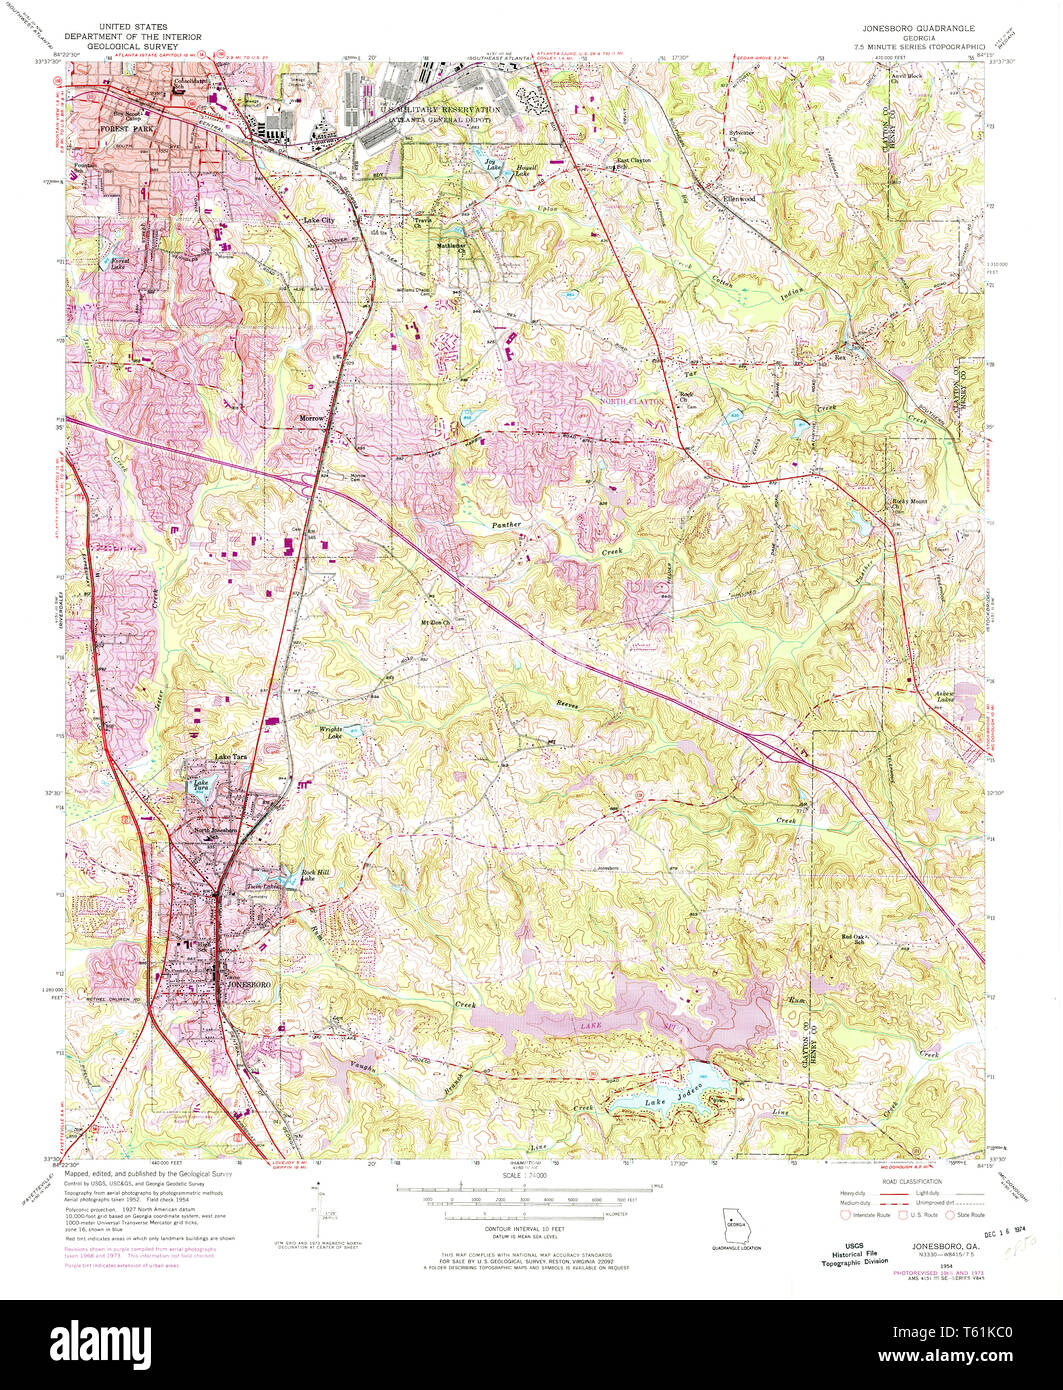 Map Of Georgia 75.Usgs Topo Map Georgia Ga Jonesboro 246058 1954 24000 Restoration